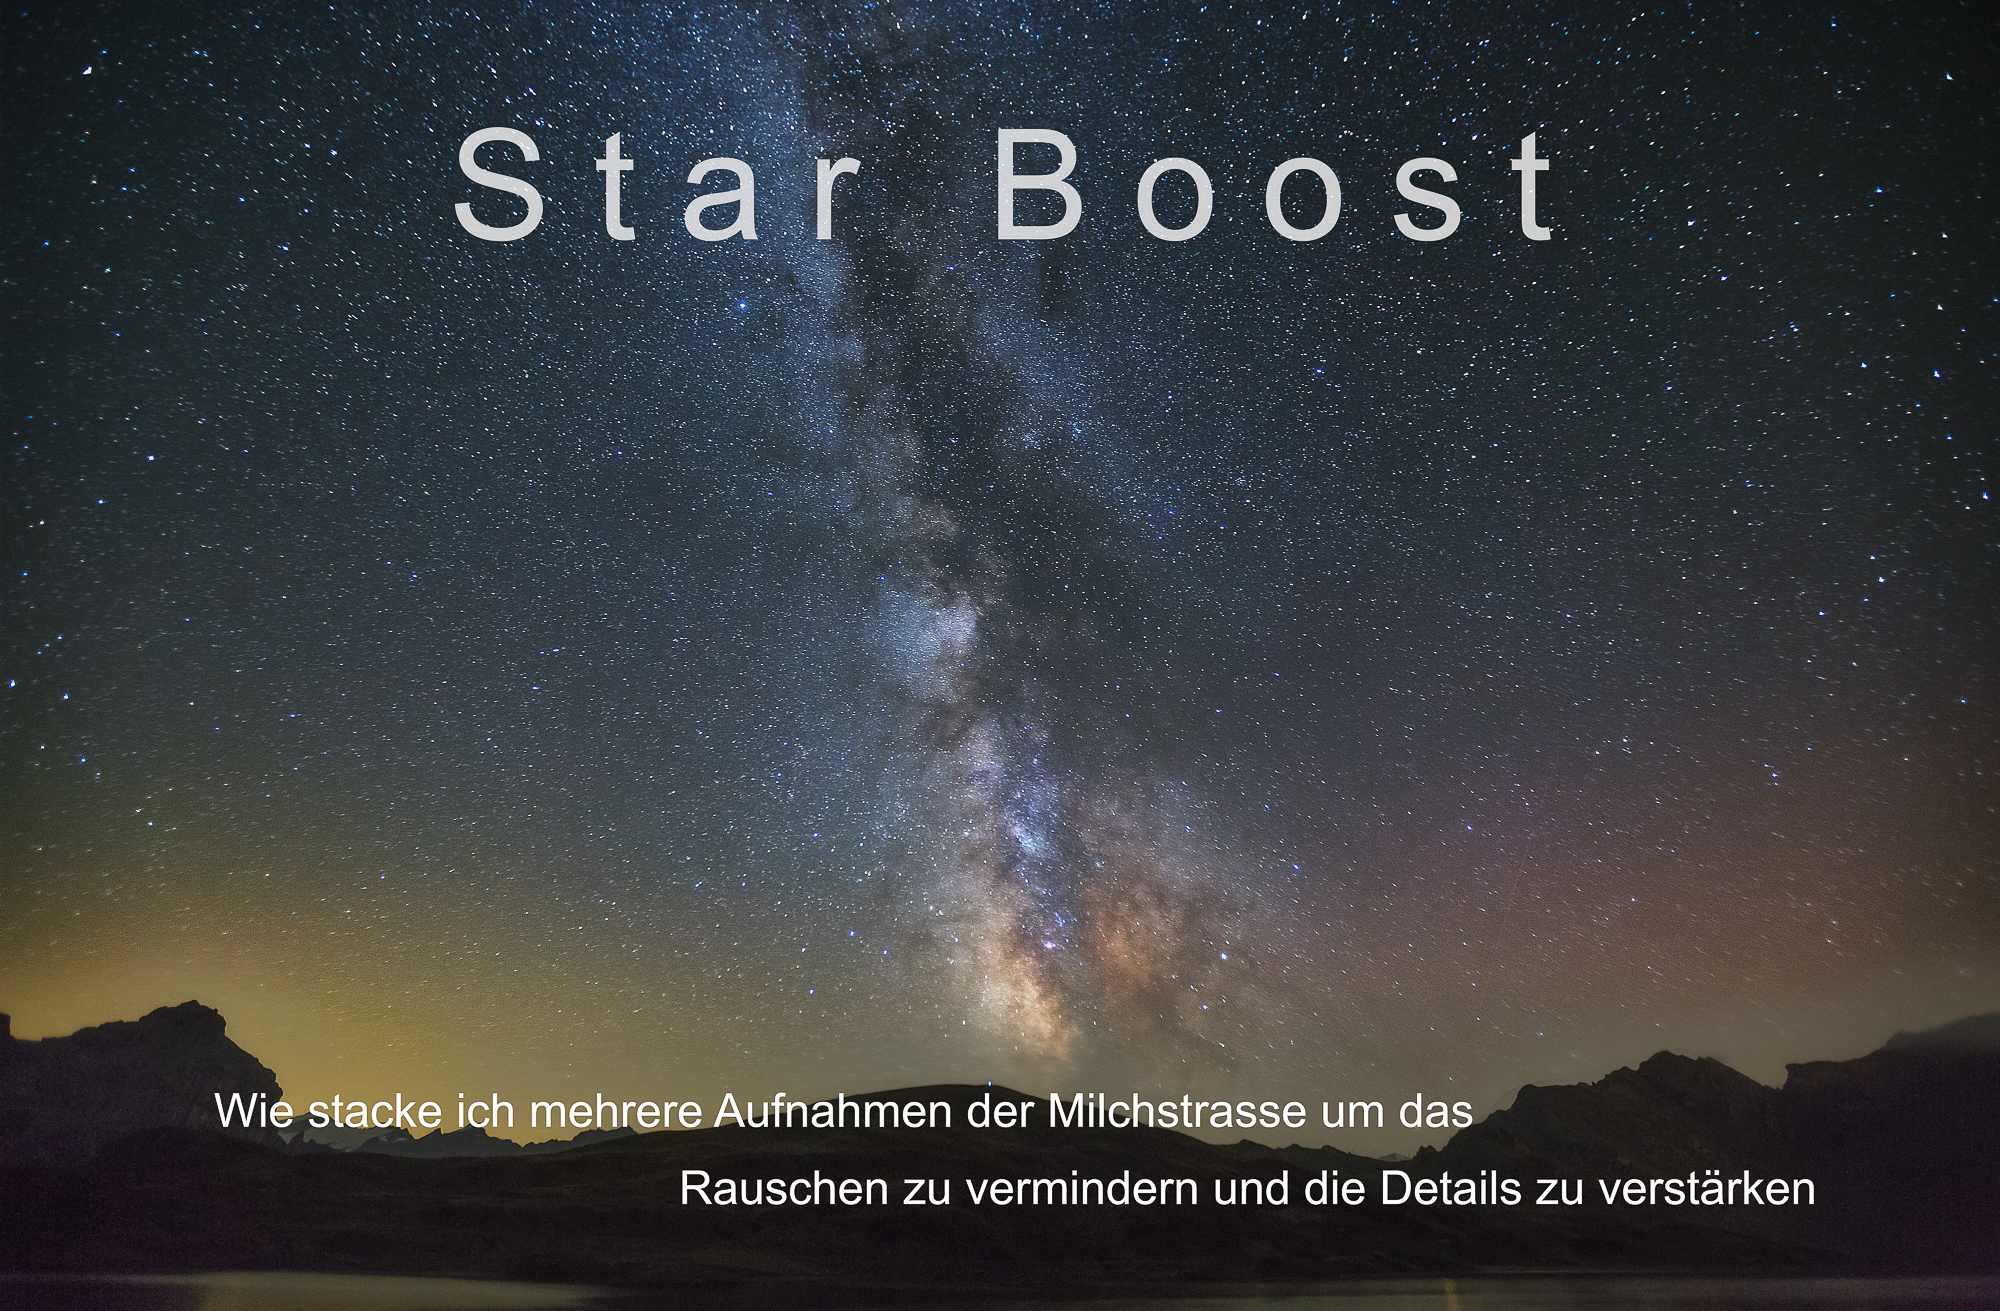 1 Tutorial-Stacking-Milchstrasse-Astrofotografie-Anleitung-Photoshop-Star Boost-Deutsch